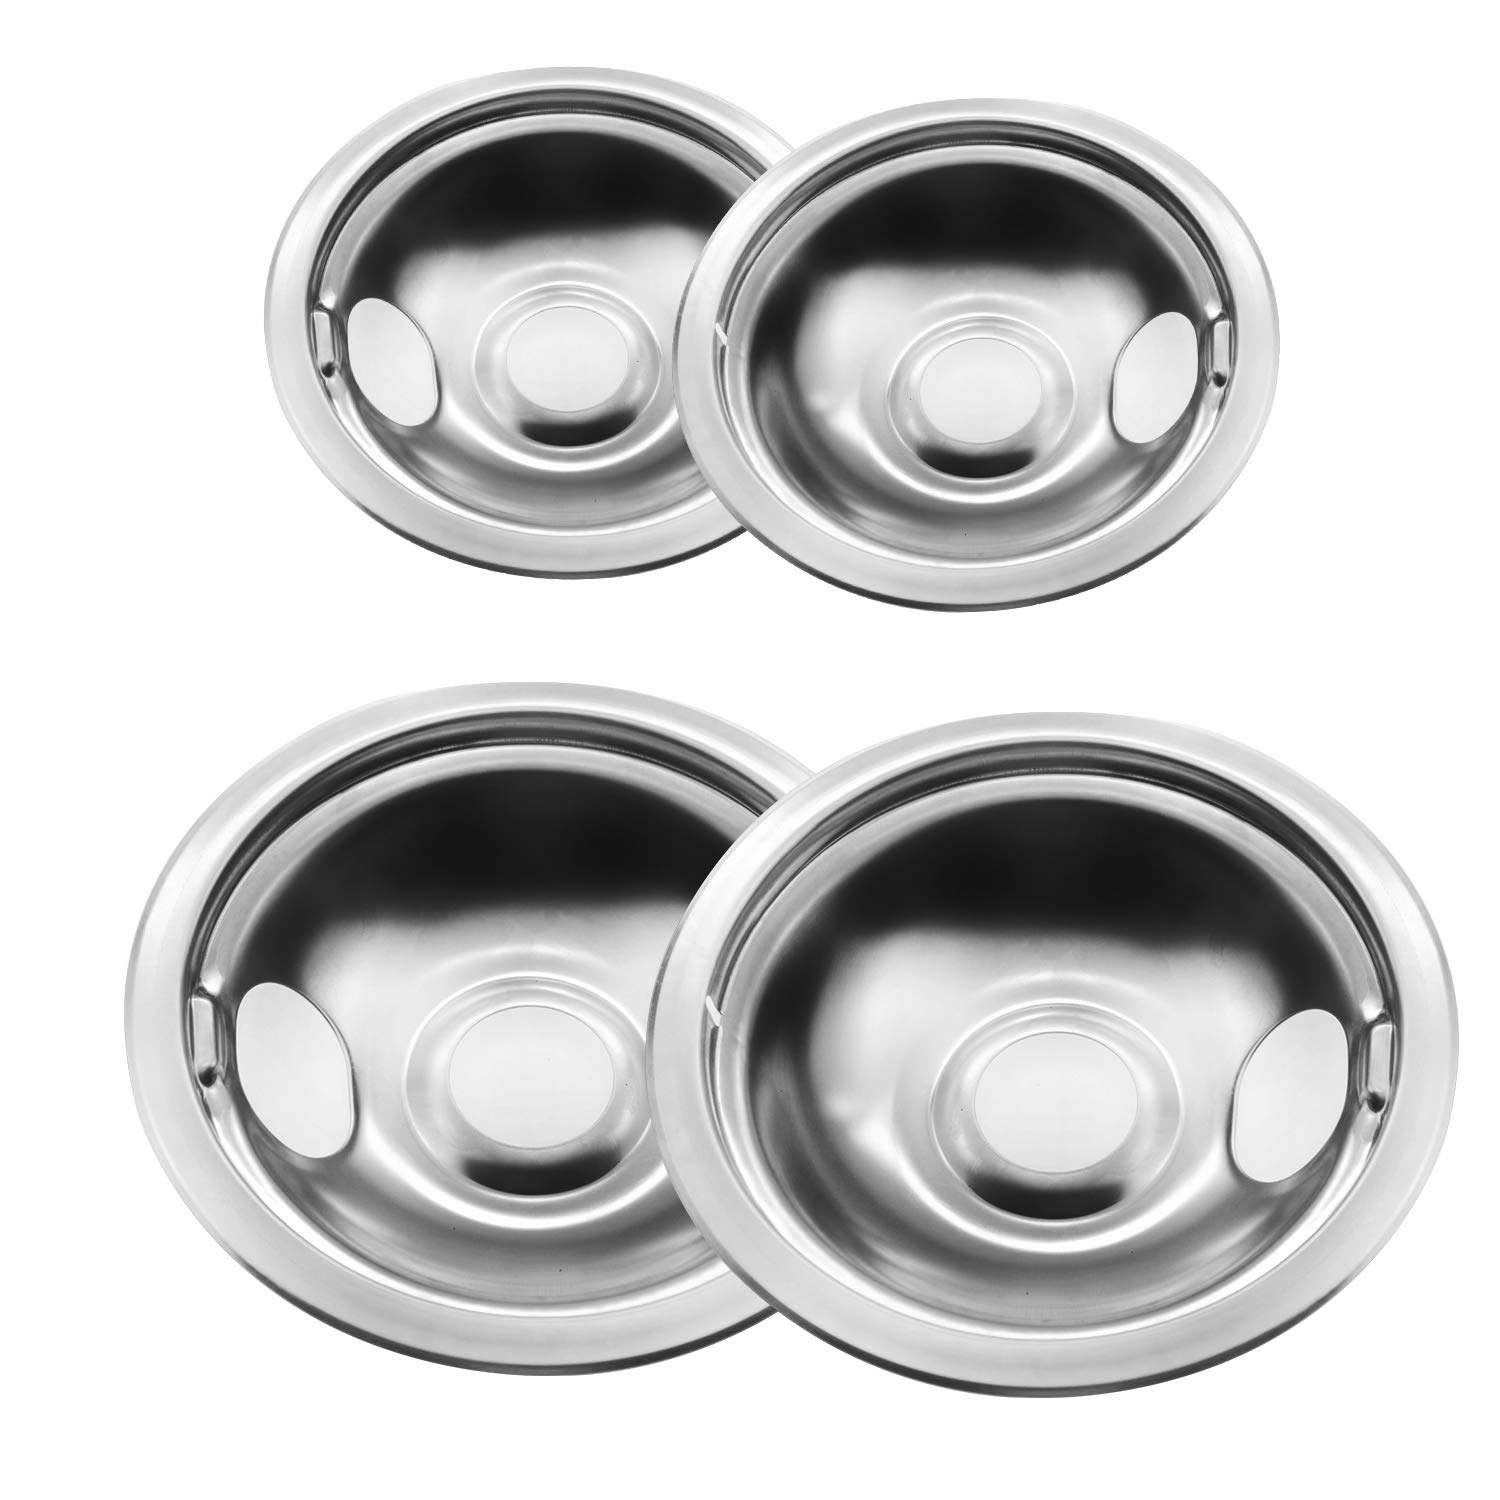 4-pack Gas Stove Burner Covers Stainless Steel Reflector Bowls Stove Drip Pans for Frigidaire Kenmore 5304430149, 5304430150